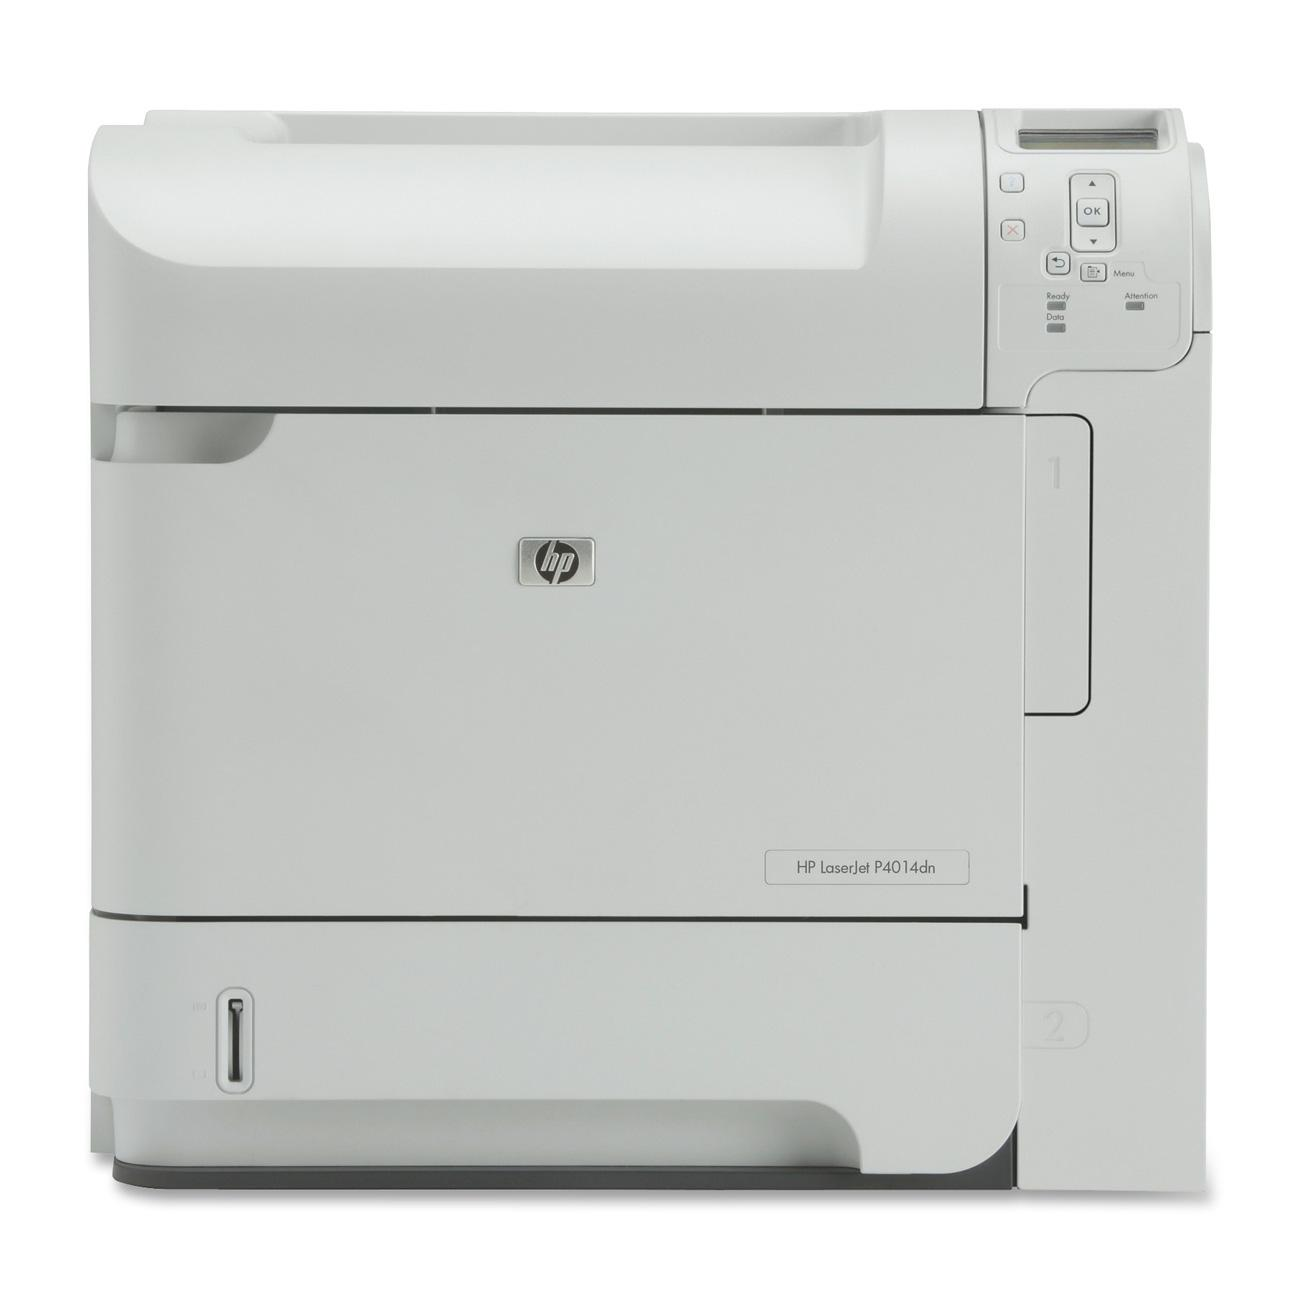 HP LaserJet P4014DN Laser Printer - Monochrome - 1200 x 1200 dpi Print - Plain Paper Print - Desktop - 45 ppm Mono Print - Letter, Legal, Executive, Statement, Government Legal, Envelope No. 7 3/4, Com10 Envelope, Monarch Envelope, Custom Size - 600 sheet 0